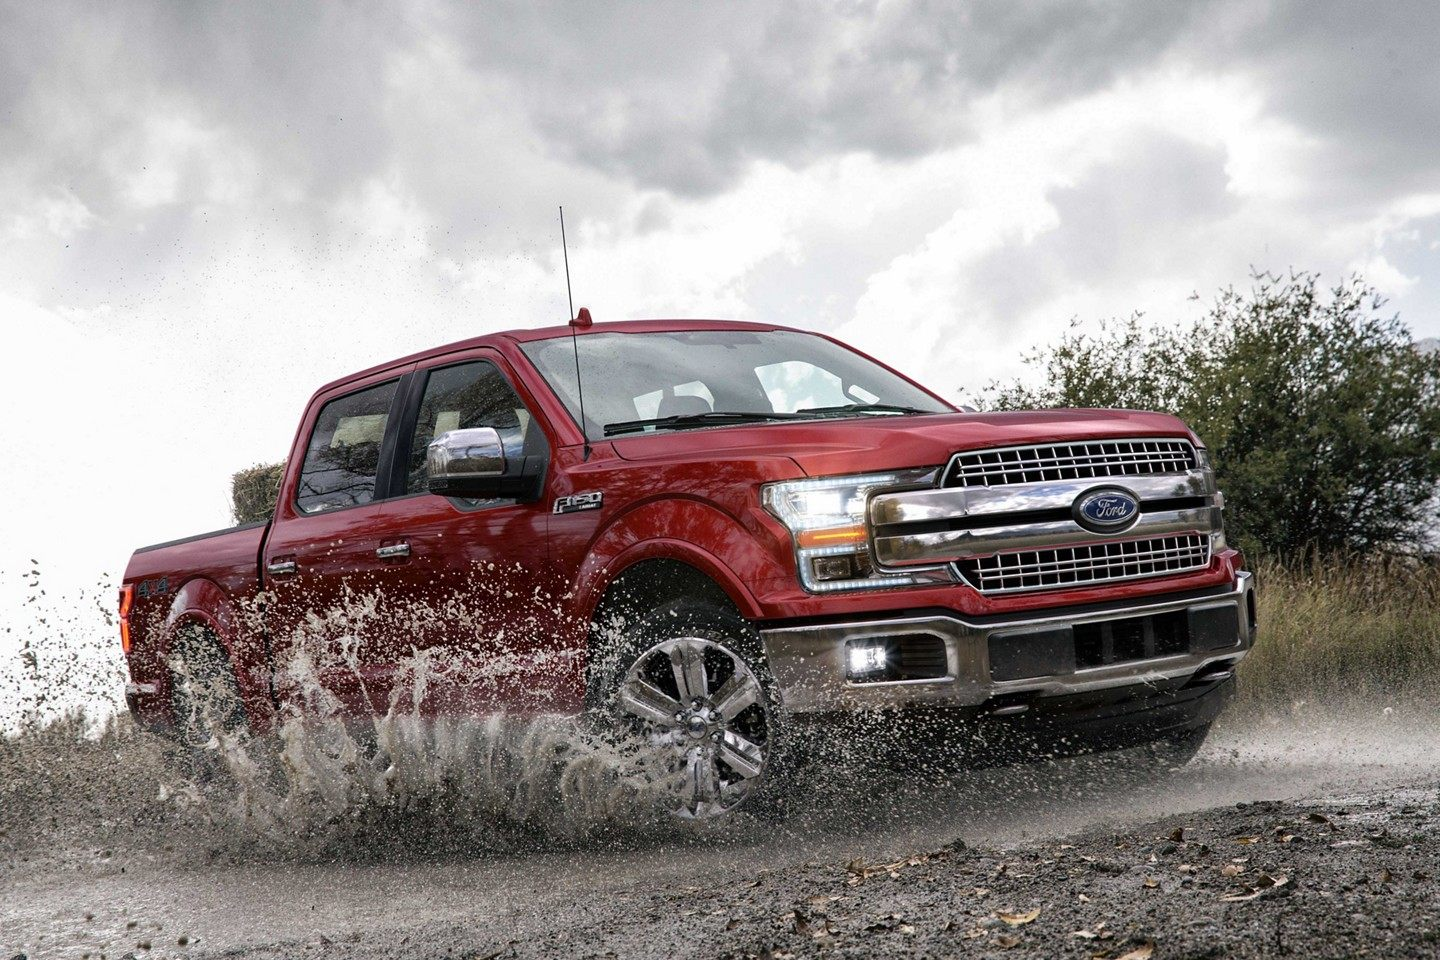 2019 Ford F-150 Red Exterior Side View Off-Road Picture